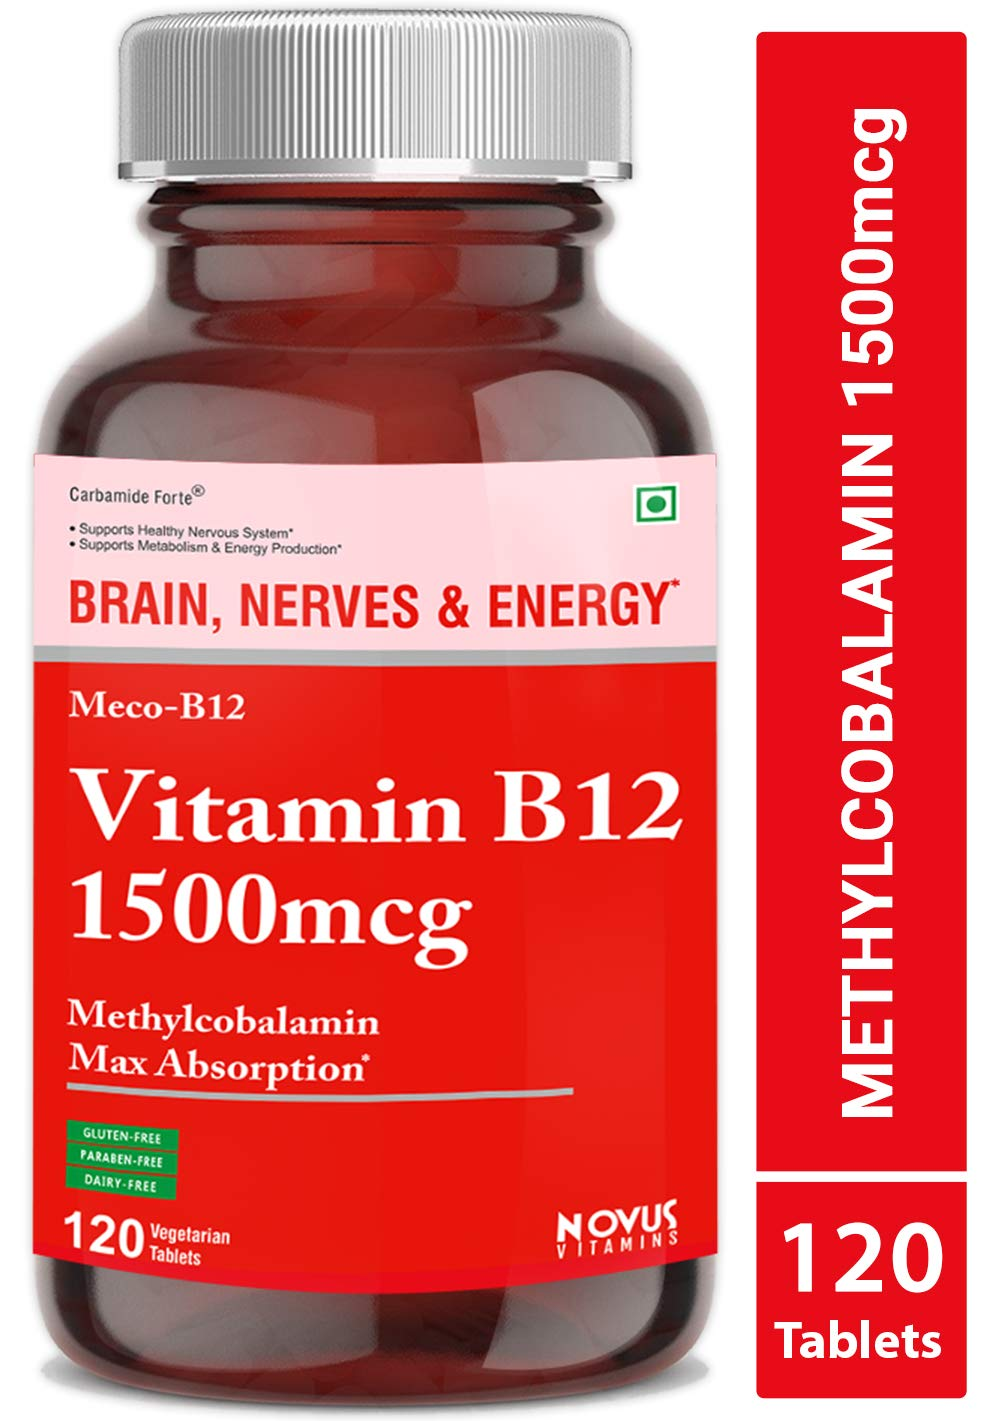 Carbamide Forte Methylcobalamin (Vitamin B12) 1500 mcg Supplement - 120 Veg Tablets product image